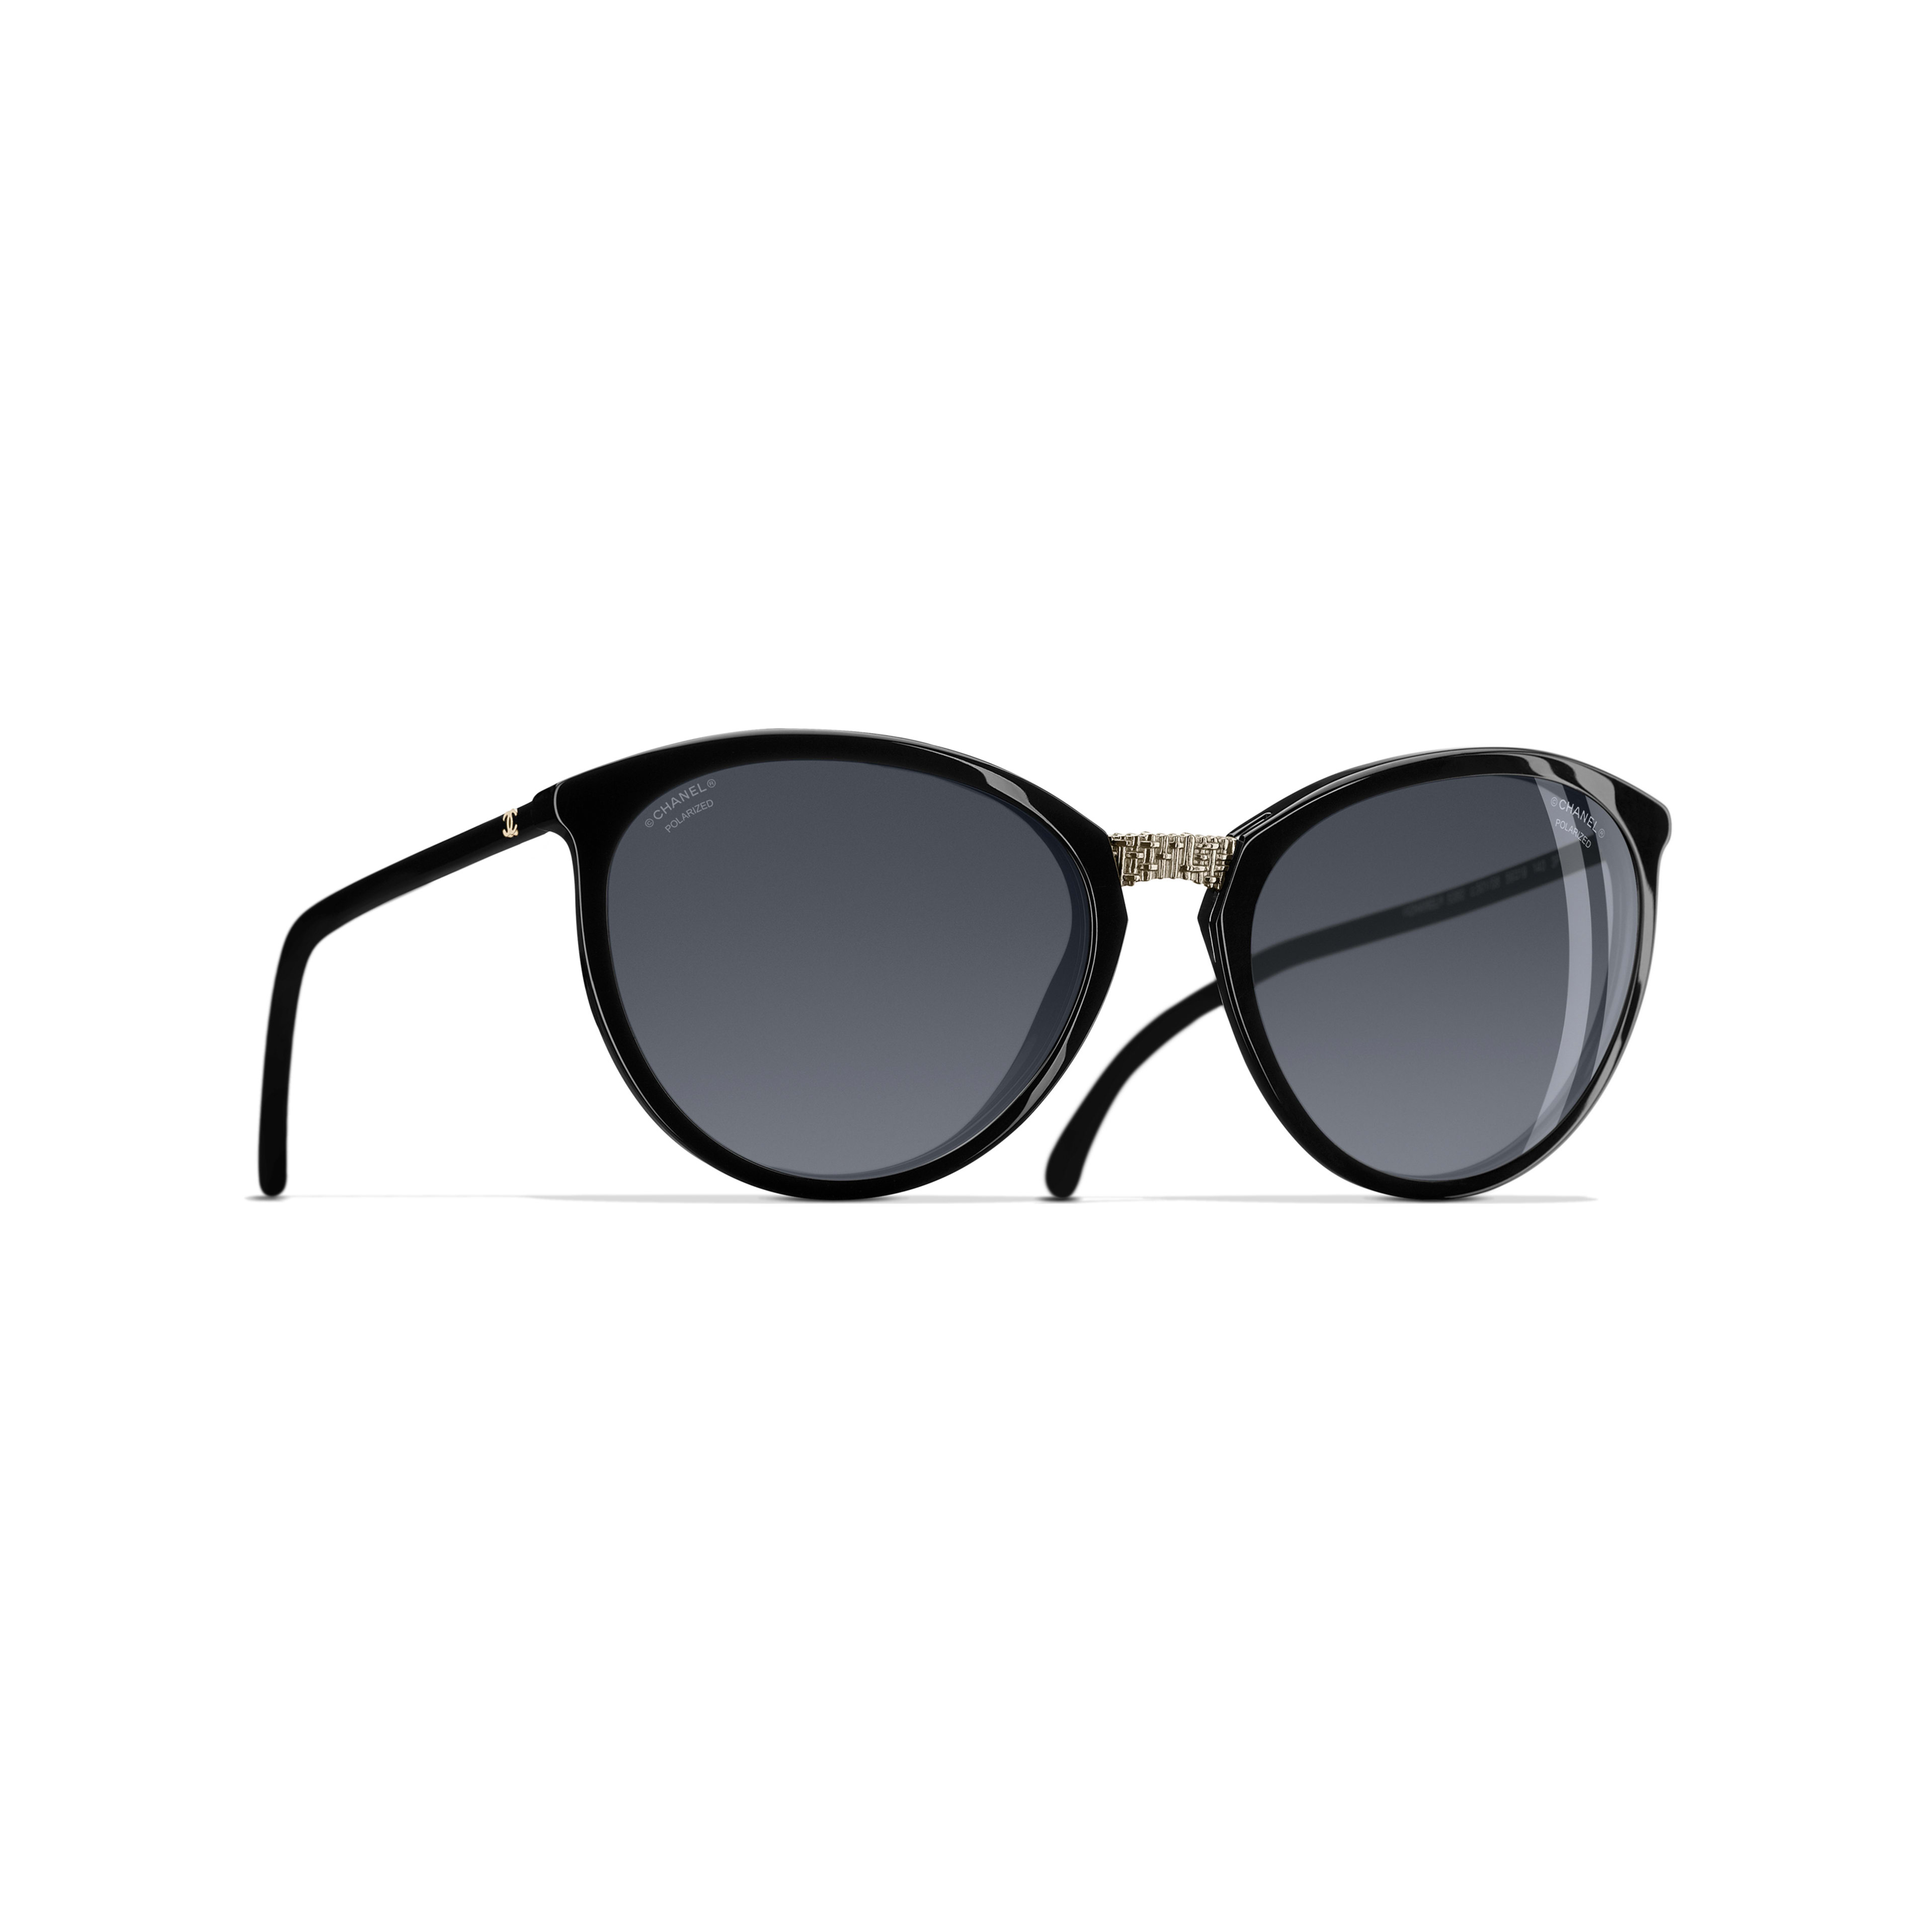 Butterfly Sunglasses Acetate - Polarized Lenses Black -                                               view 1 - see full sized version